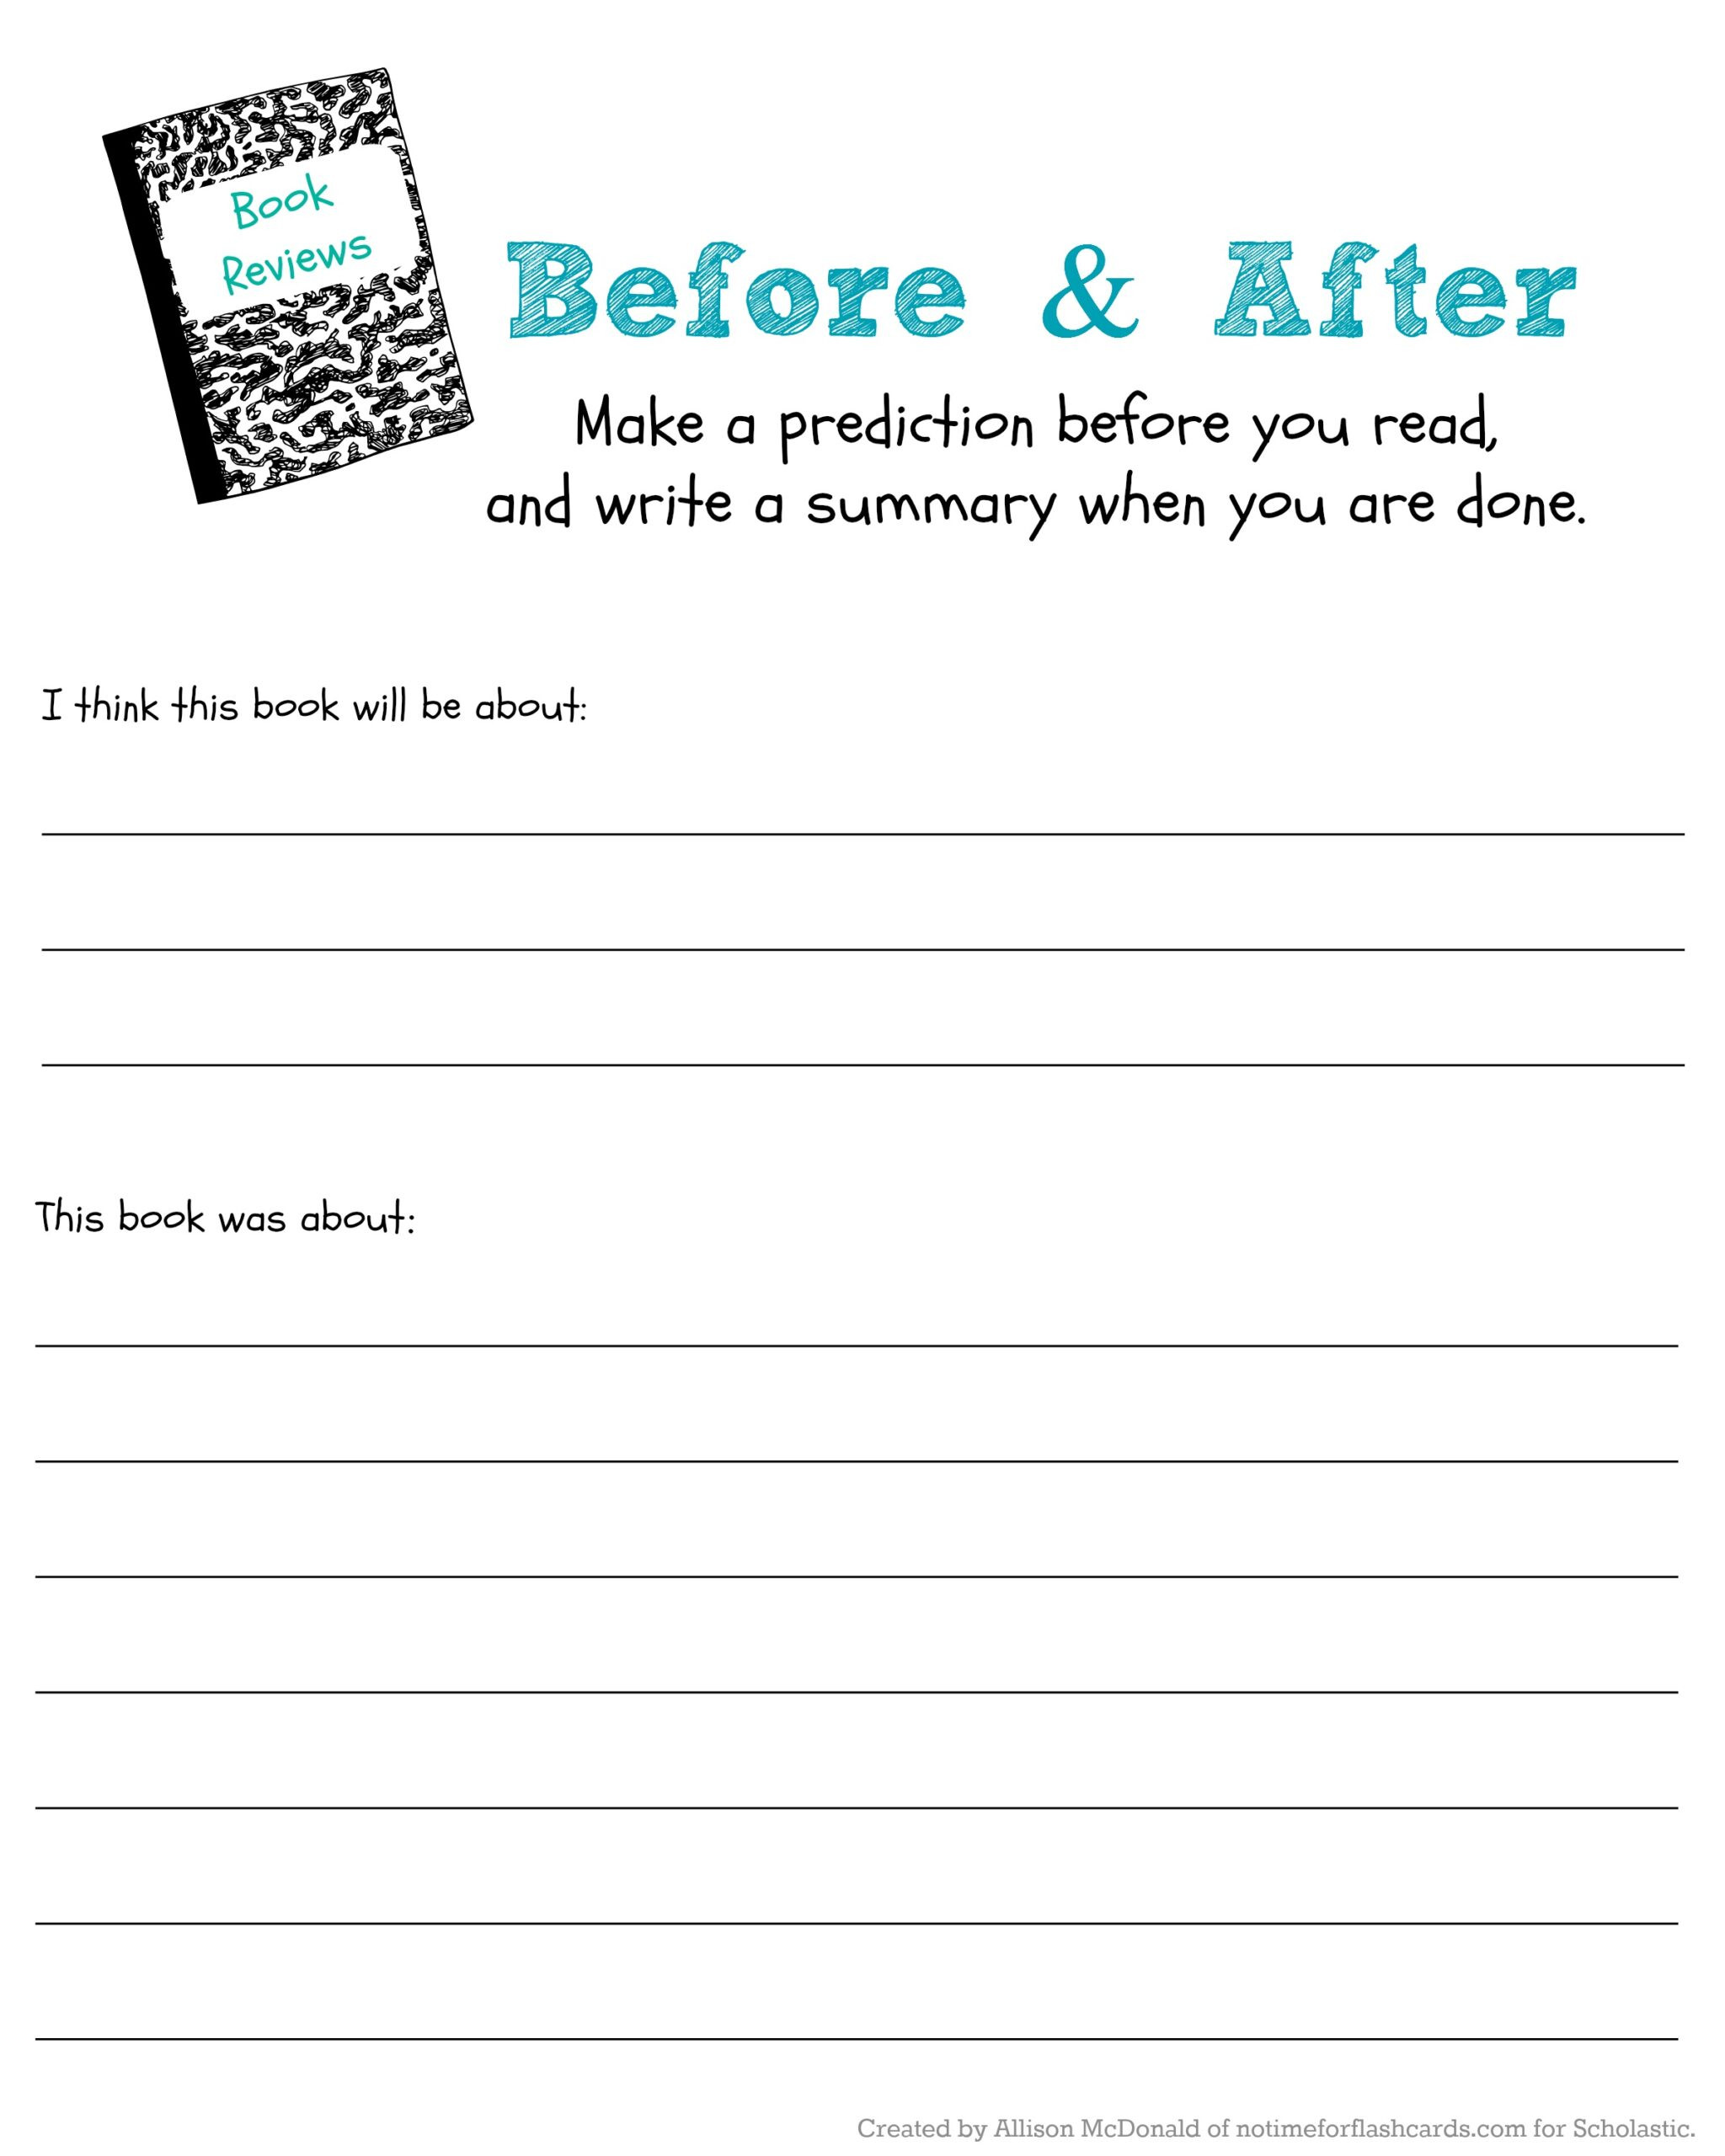 Making Predictions Worksheet 2nd Grade Judge Book by Its Cover to Predict Read Scholastic Parents